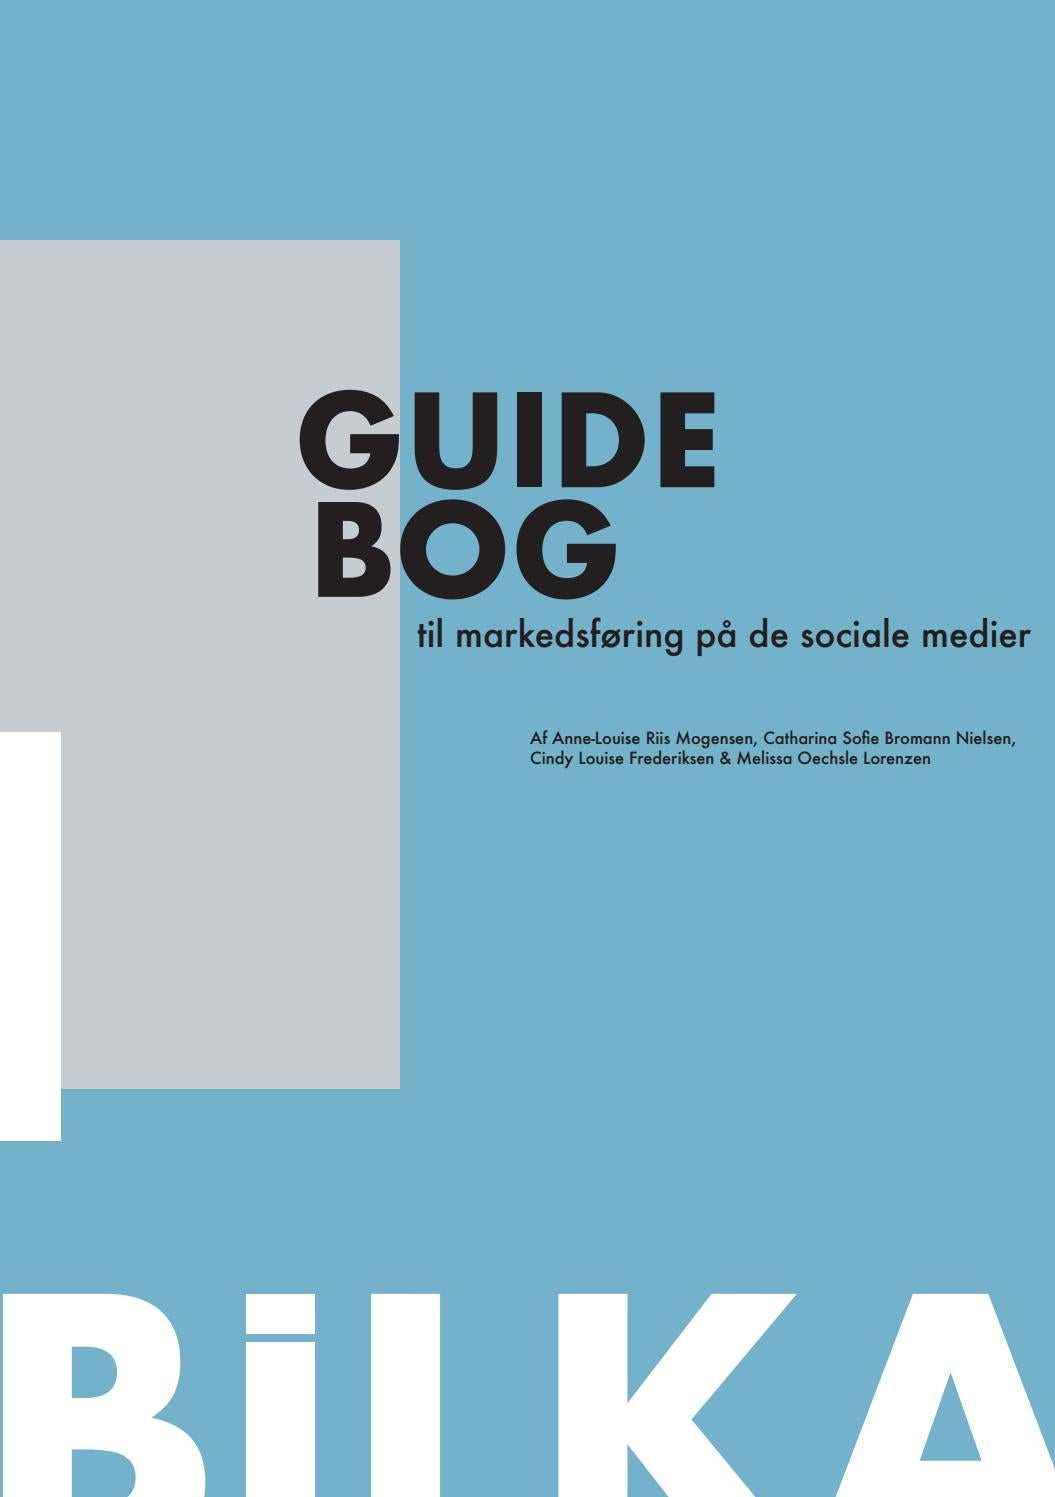 Picture of: Bilka Guidebog By Melissa Issuu